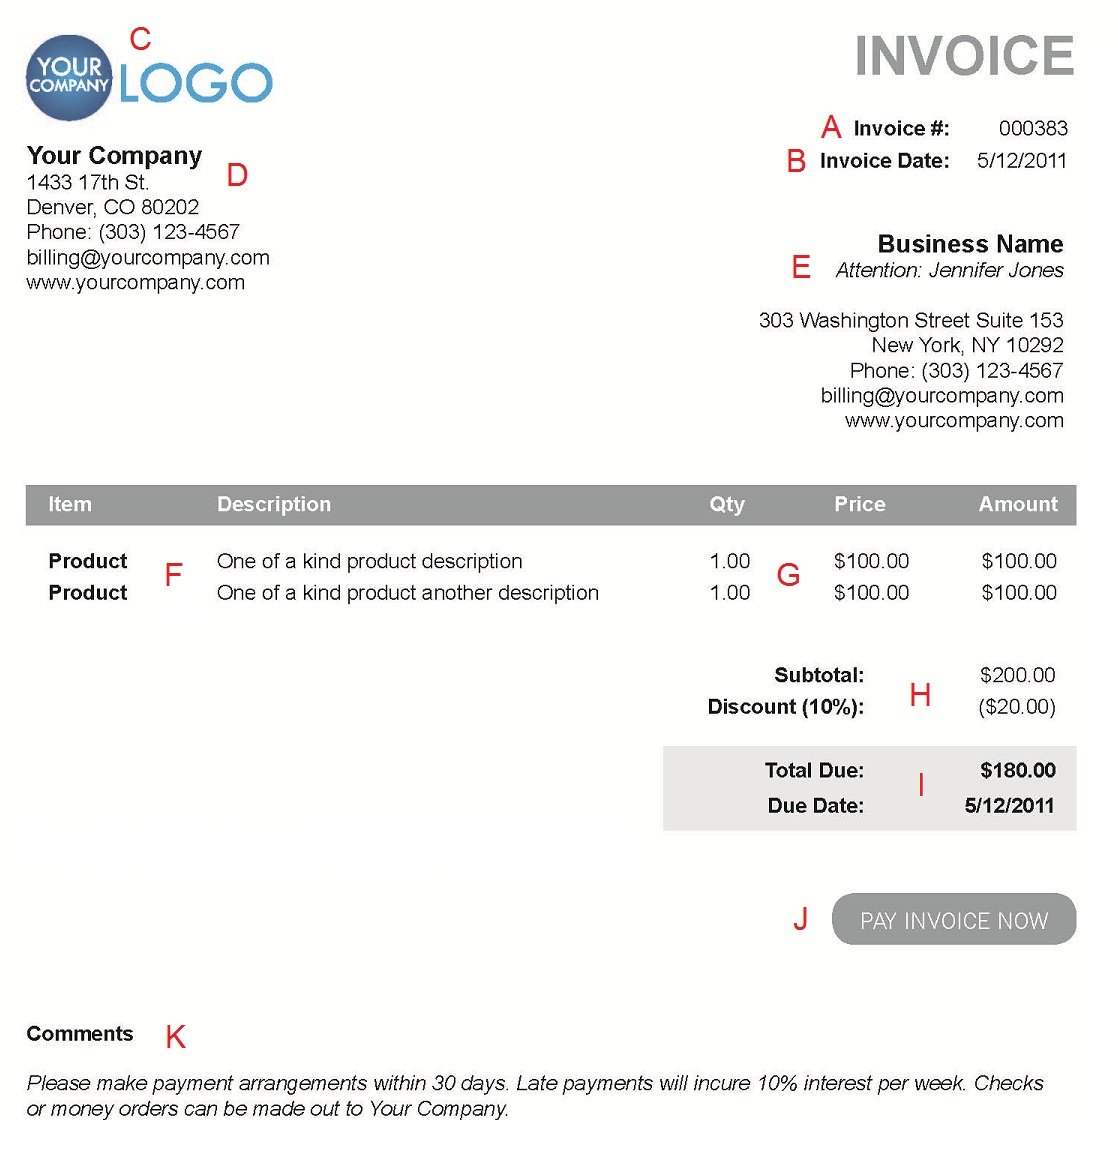 Carsforlessus  Surprising The  Different Sections Of An Electronic Payment Invoice With Excellent A  With Cool Invoice For Work Done Also Invoice Sample Download In Addition Invoice Discounting Facility And How Does Invoice Discounting Work As Well As Please Find Enclosed Invoice Additionally Invoice Sheet Template From Paysimplecom With Carsforlessus  Excellent The  Different Sections Of An Electronic Payment Invoice With Cool A  And Surprising Invoice For Work Done Also Invoice Sample Download In Addition Invoice Discounting Facility From Paysimplecom